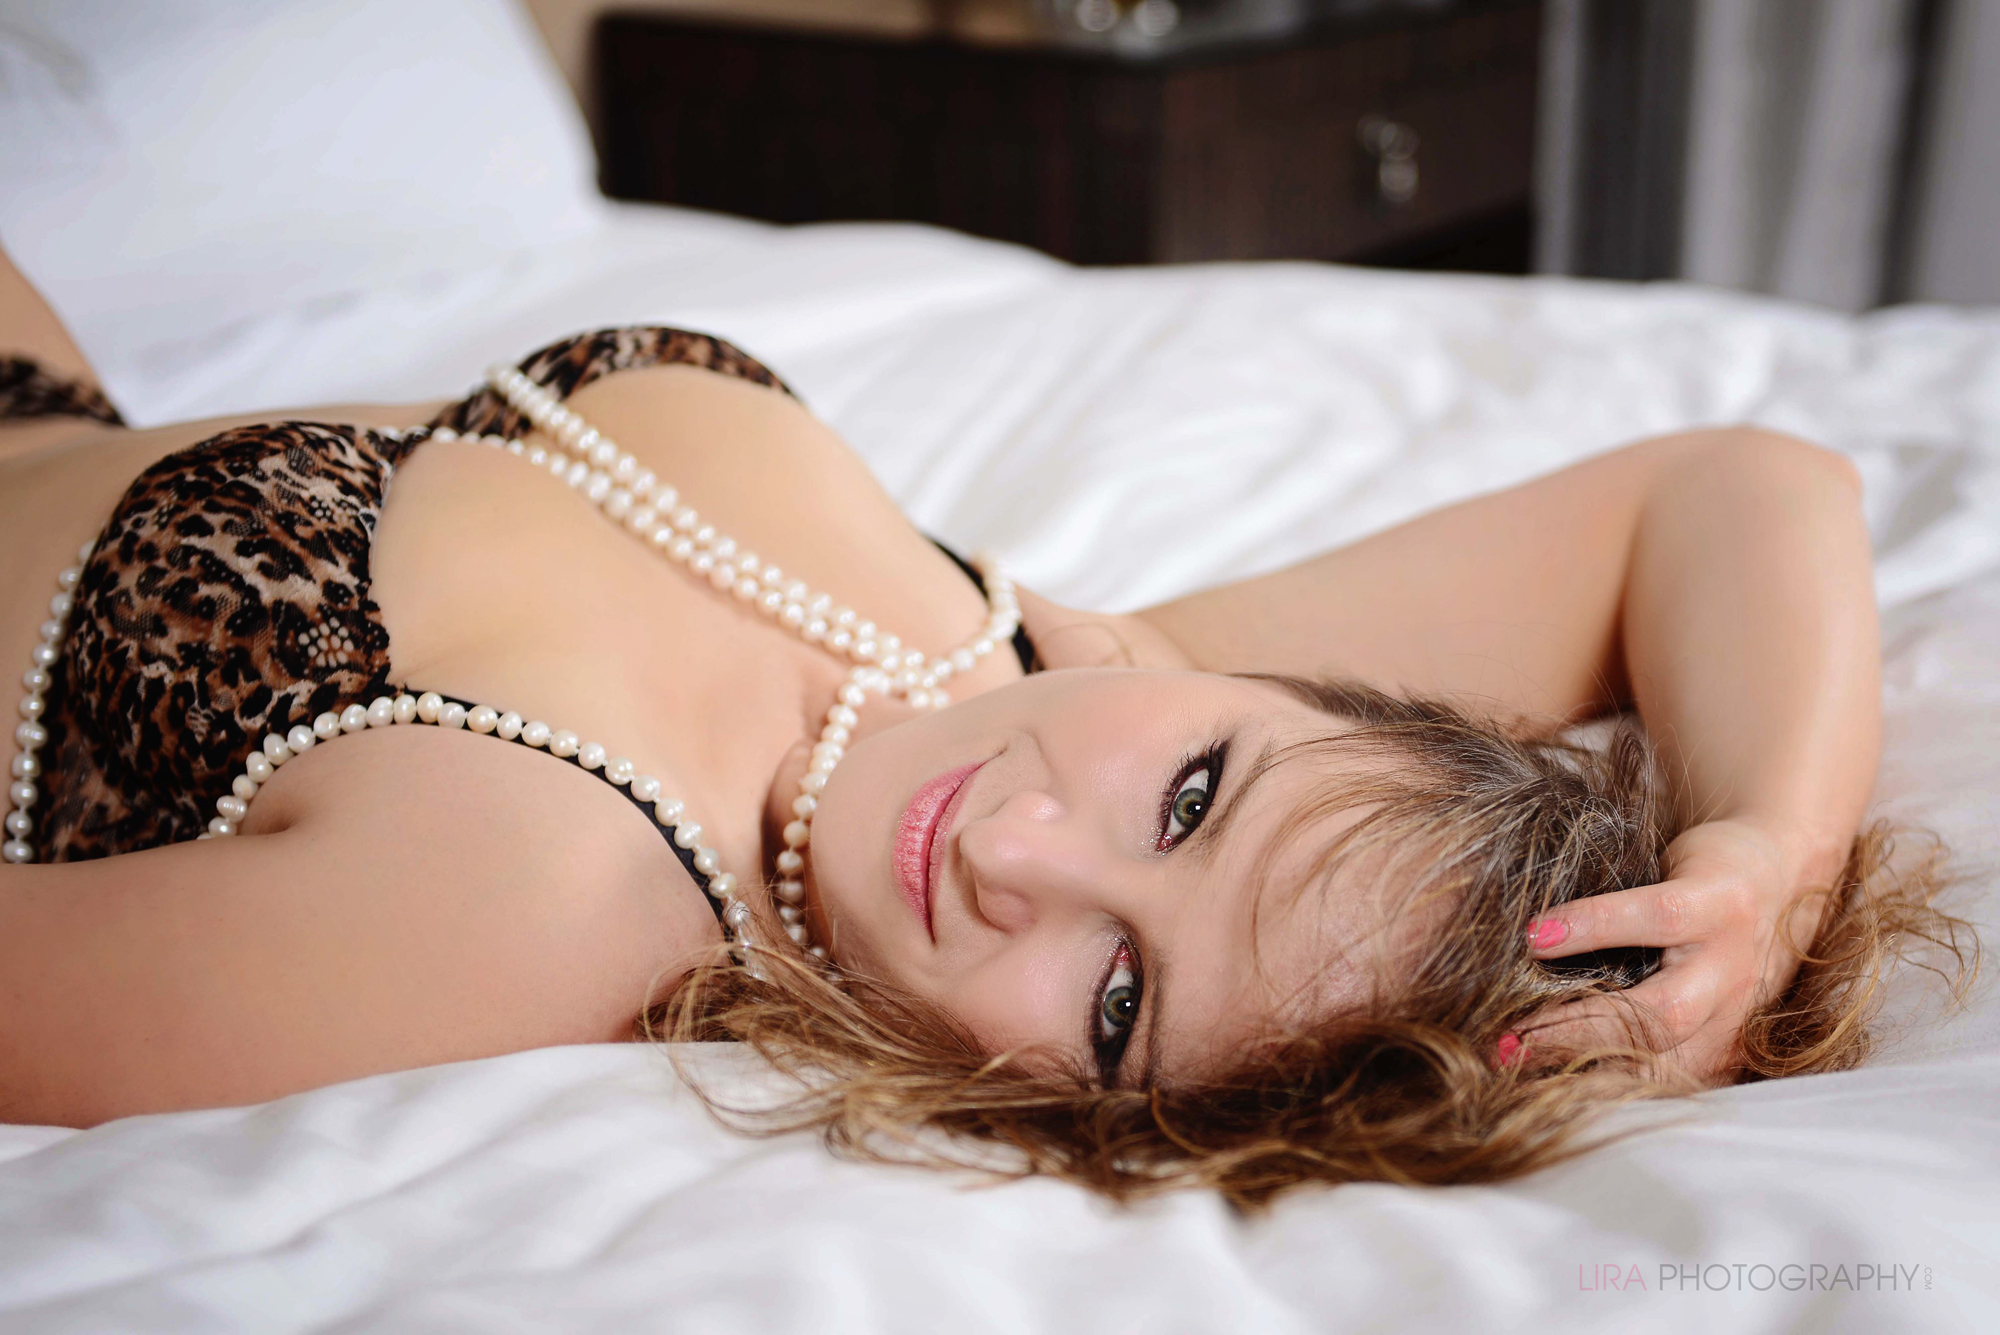 7 reasons to have a boudoir photo session 3.jpg